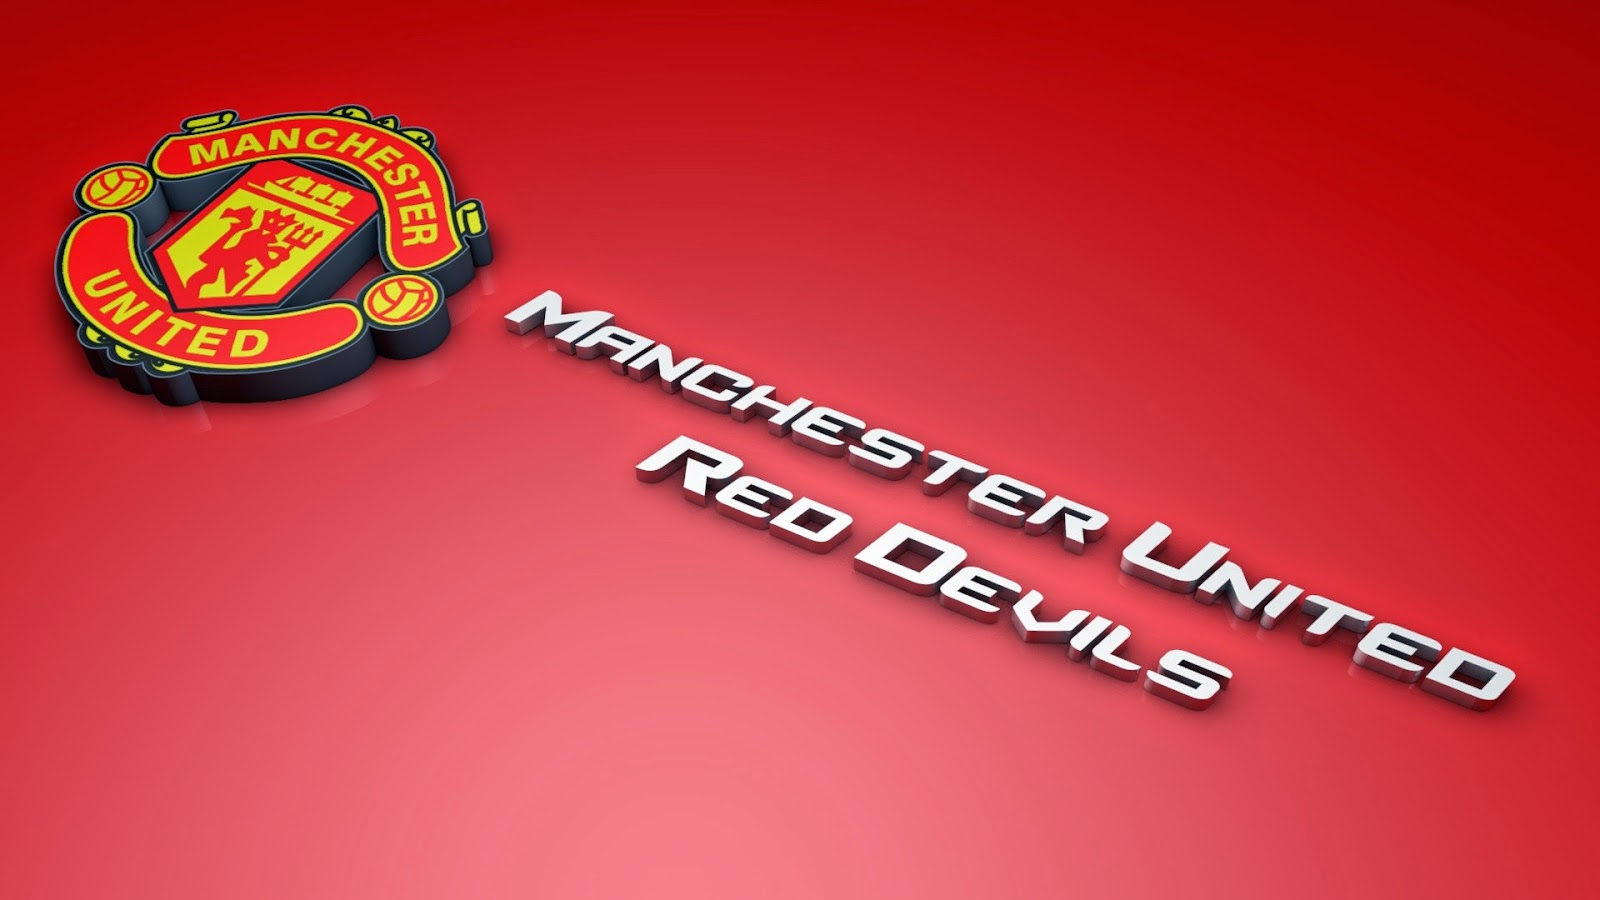 Wallpaper Android Manchester United